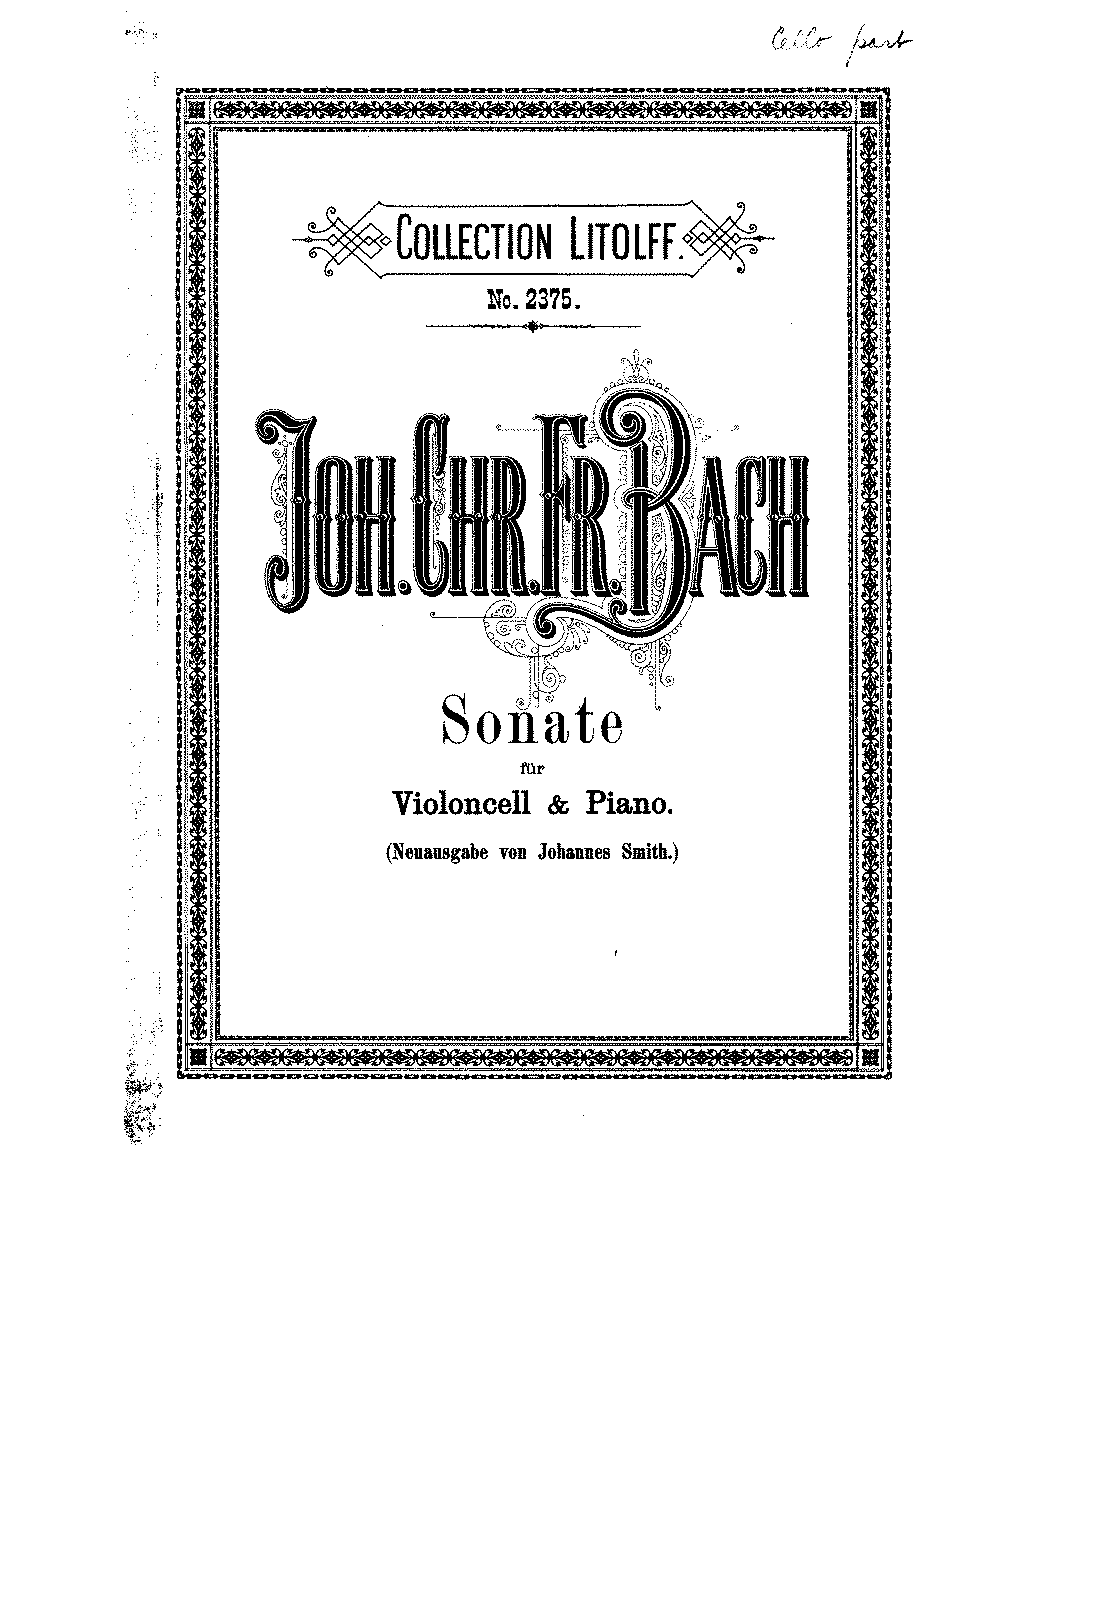 PMLP135104-BachJCF - Cello Sonata (composed in 1789) (Johannes Smith) score.pdf